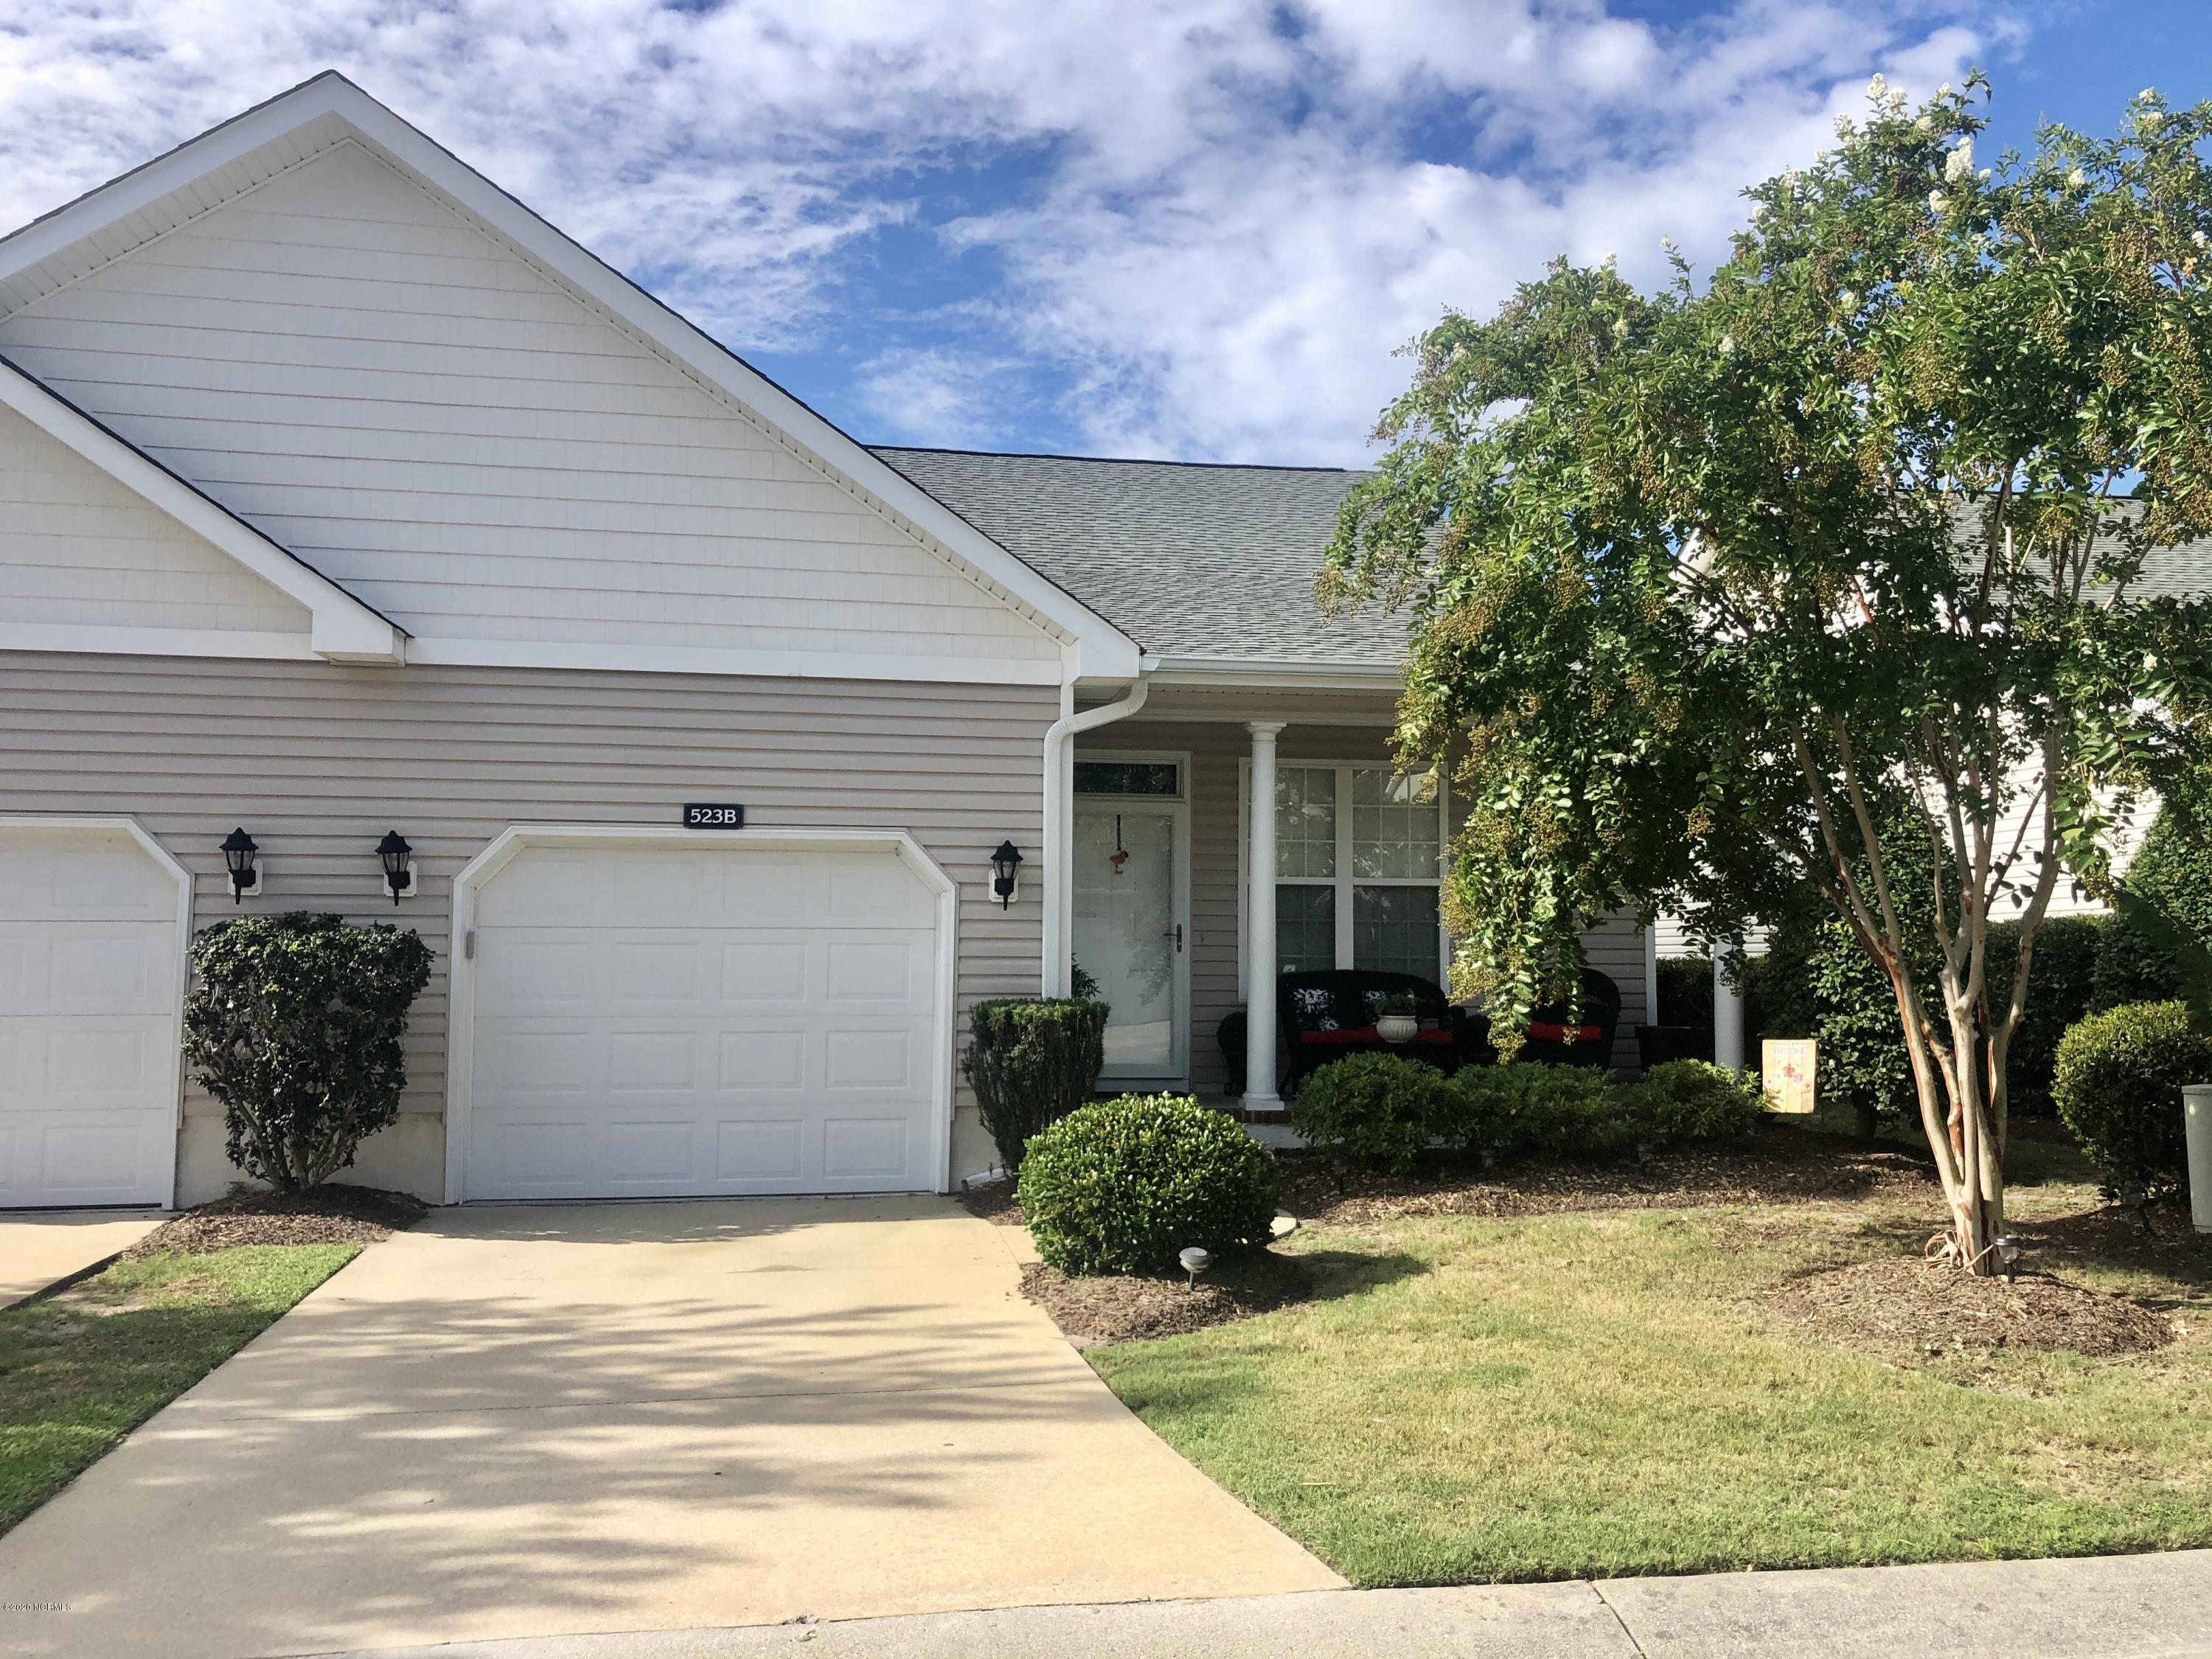 523 Village Green Drive, Morehead City, North Carolina 28557, 3 Bedrooms Bedrooms, ,2 BathroomsBathrooms,Residential,For Sale,Village Green,100231384